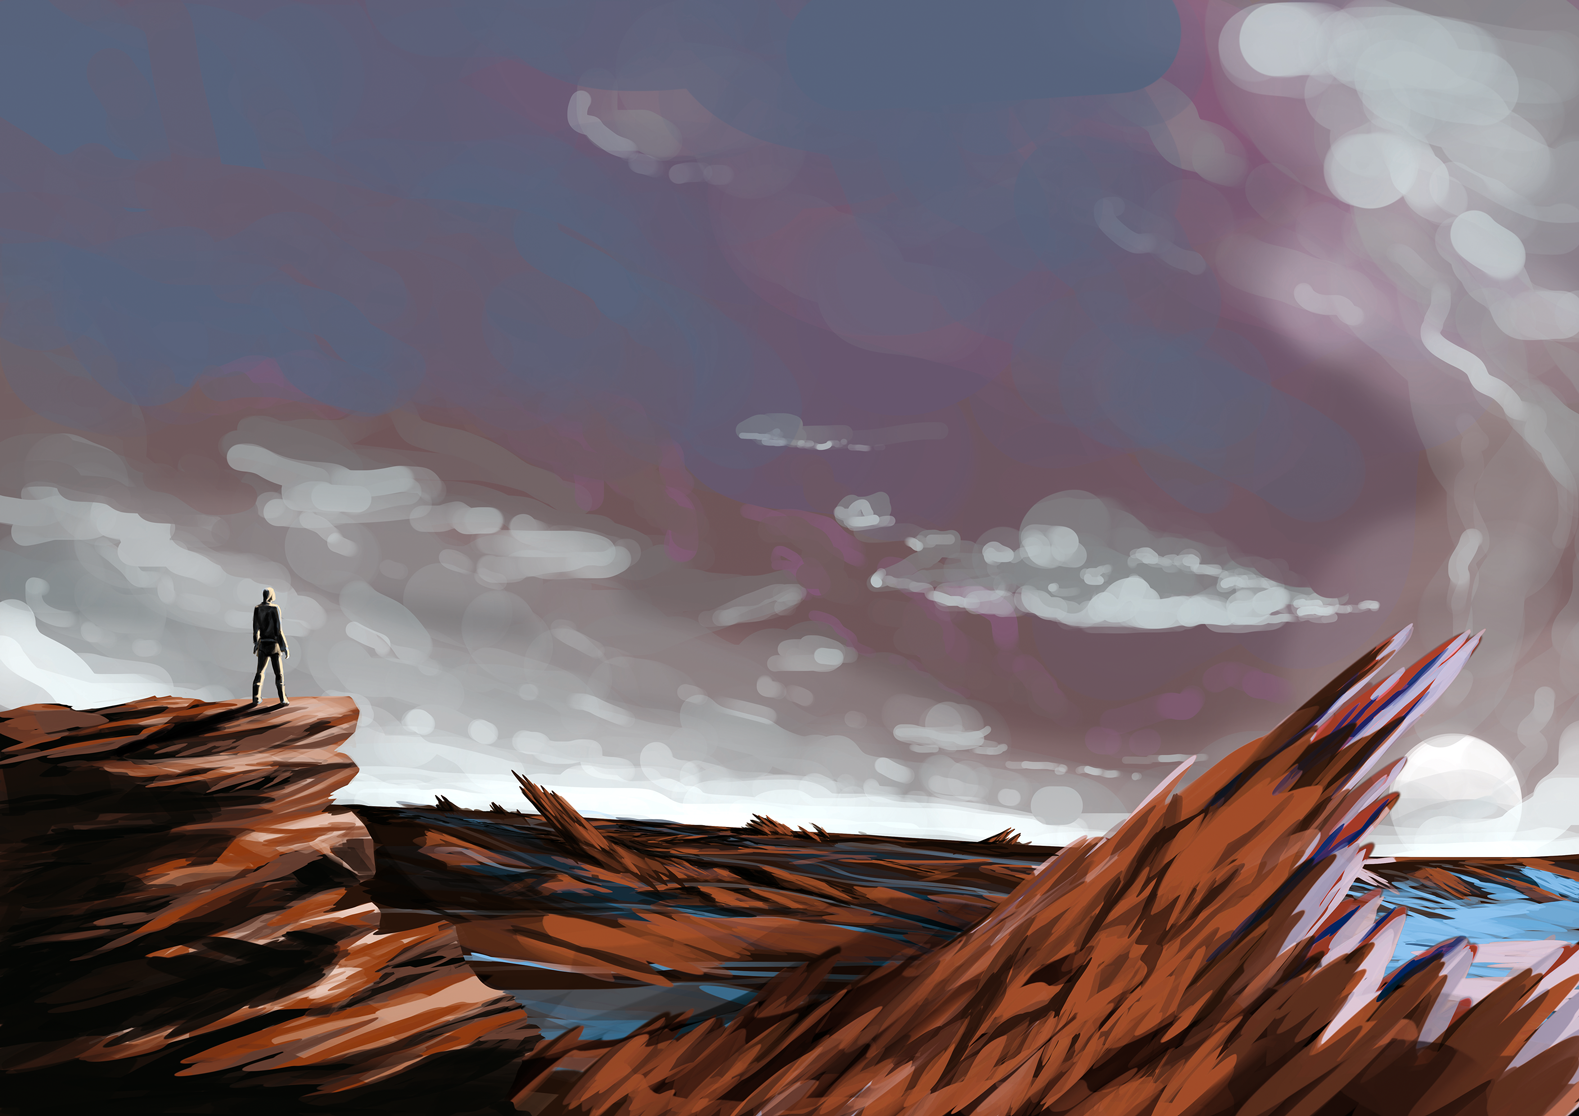 desertlandscape par Willustrate